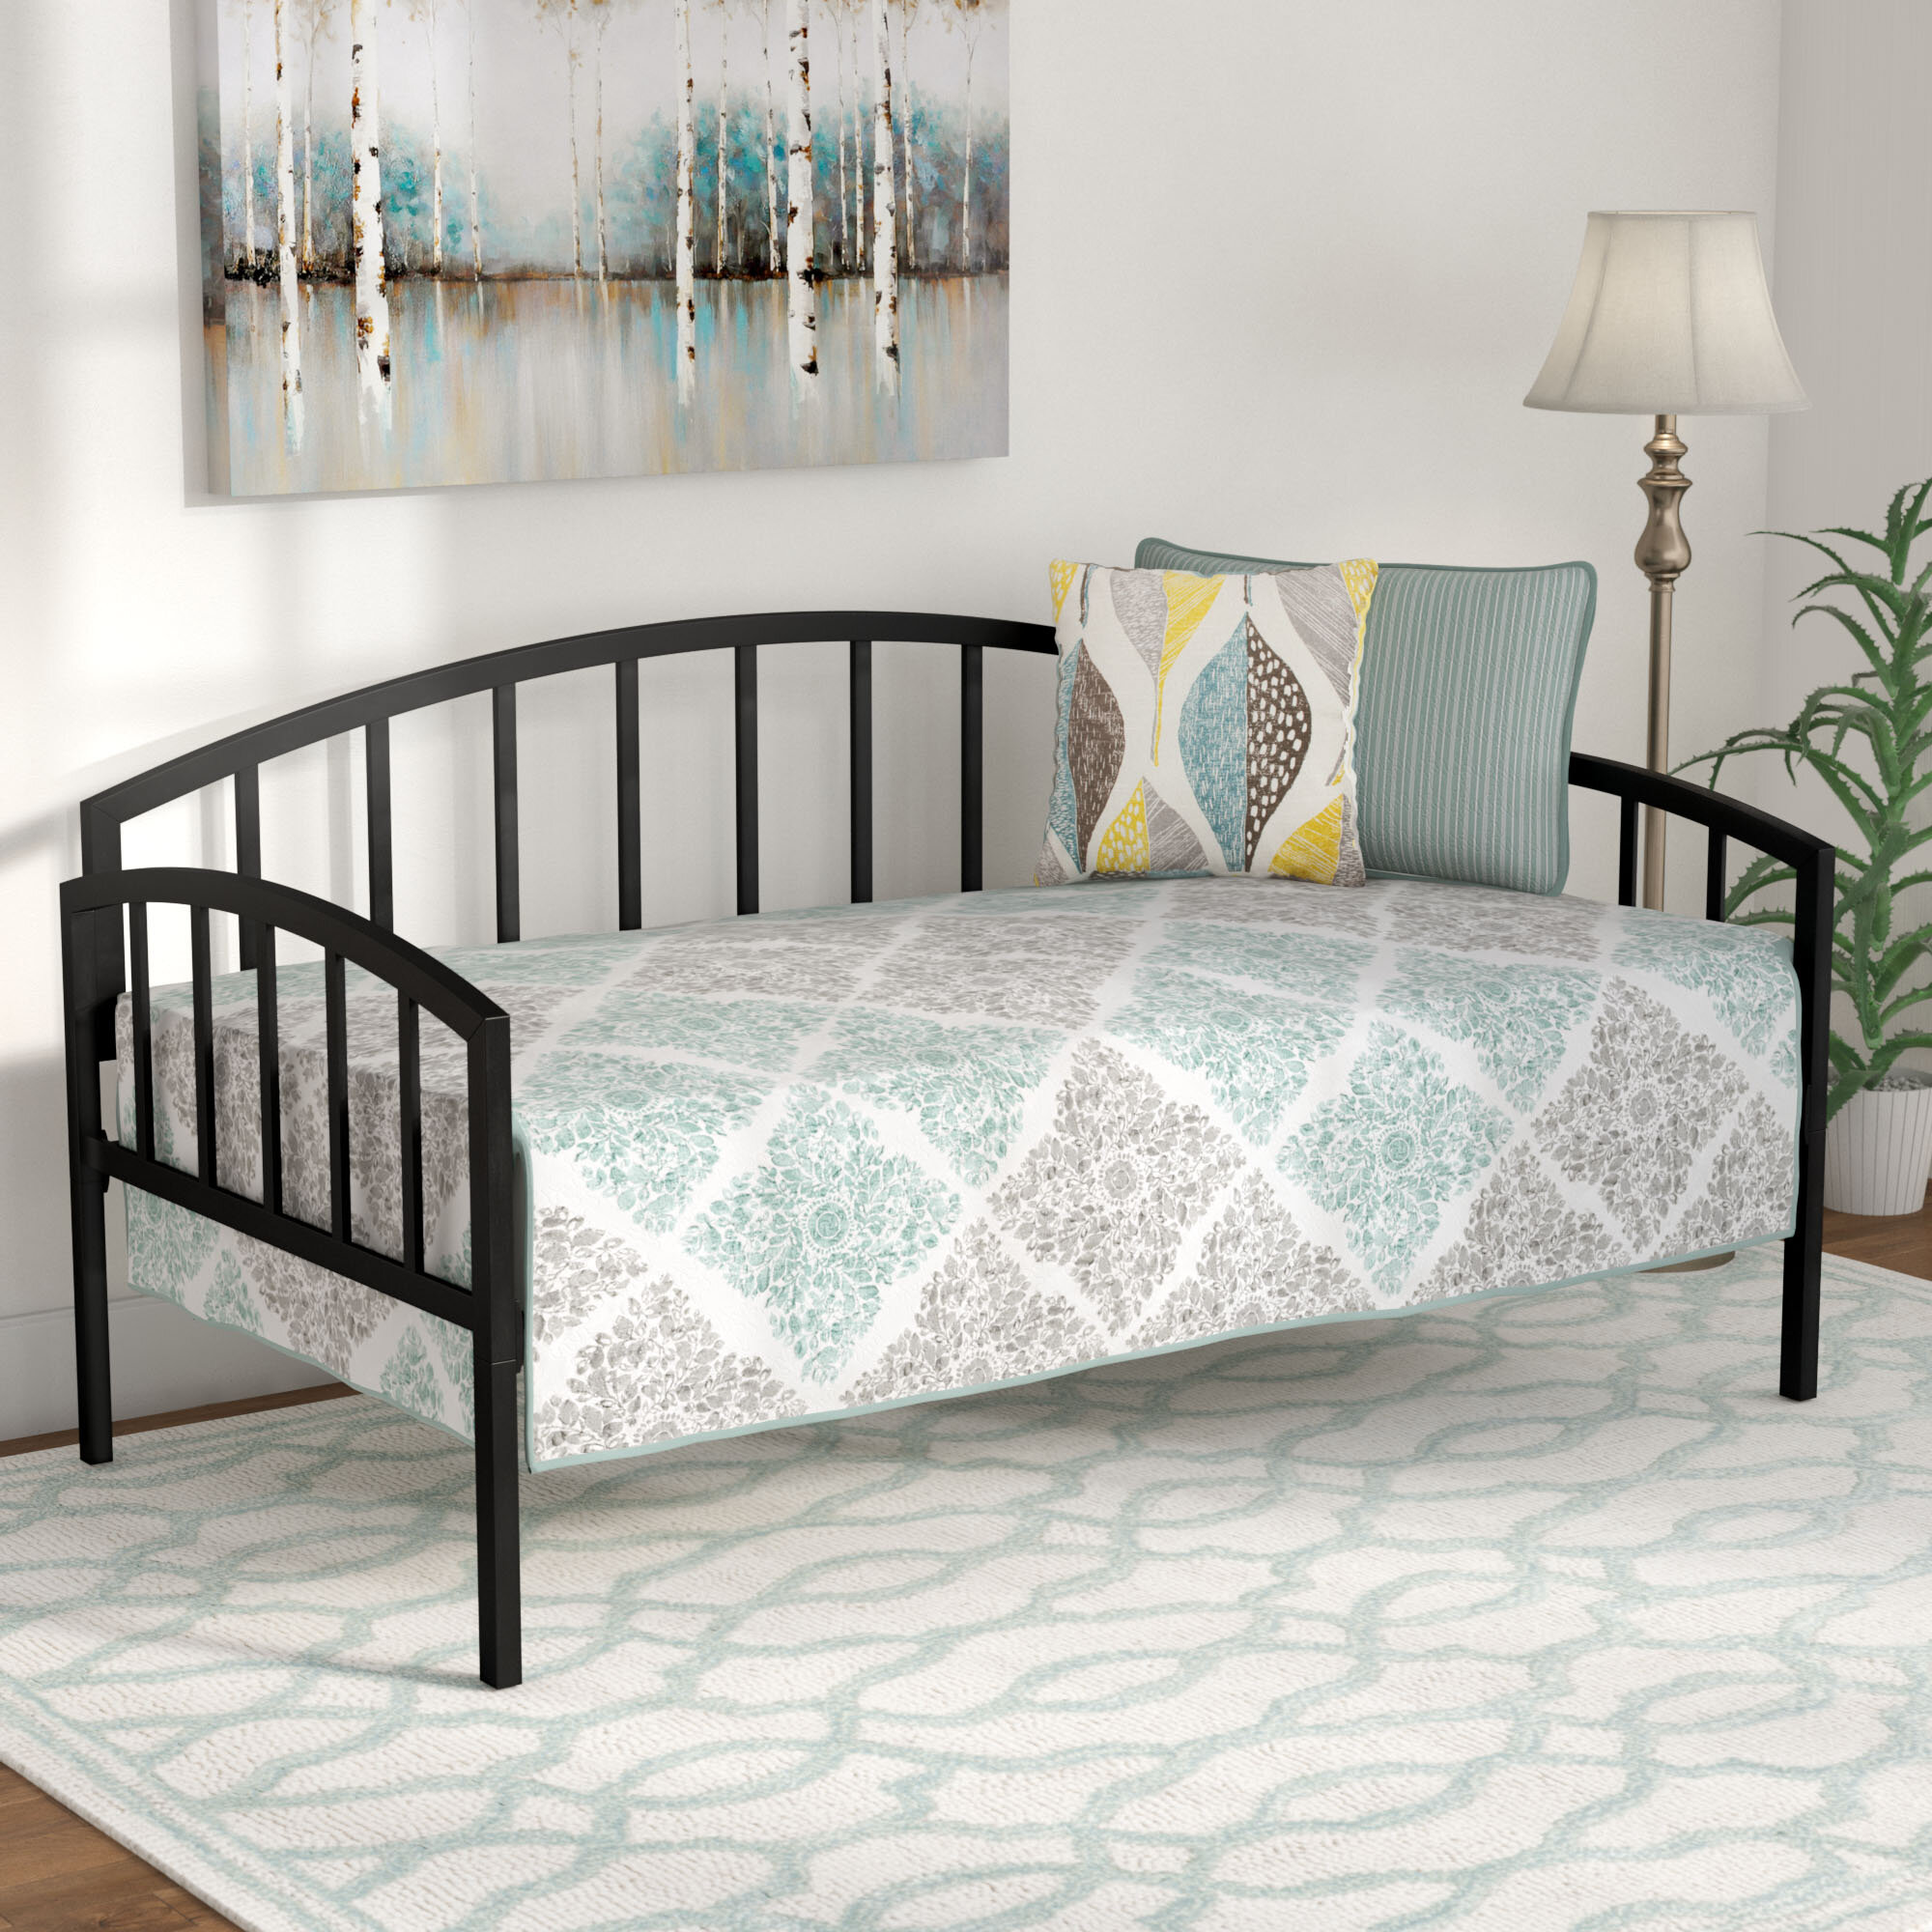 Daybeds From 99 Through 01 05 Wayfair